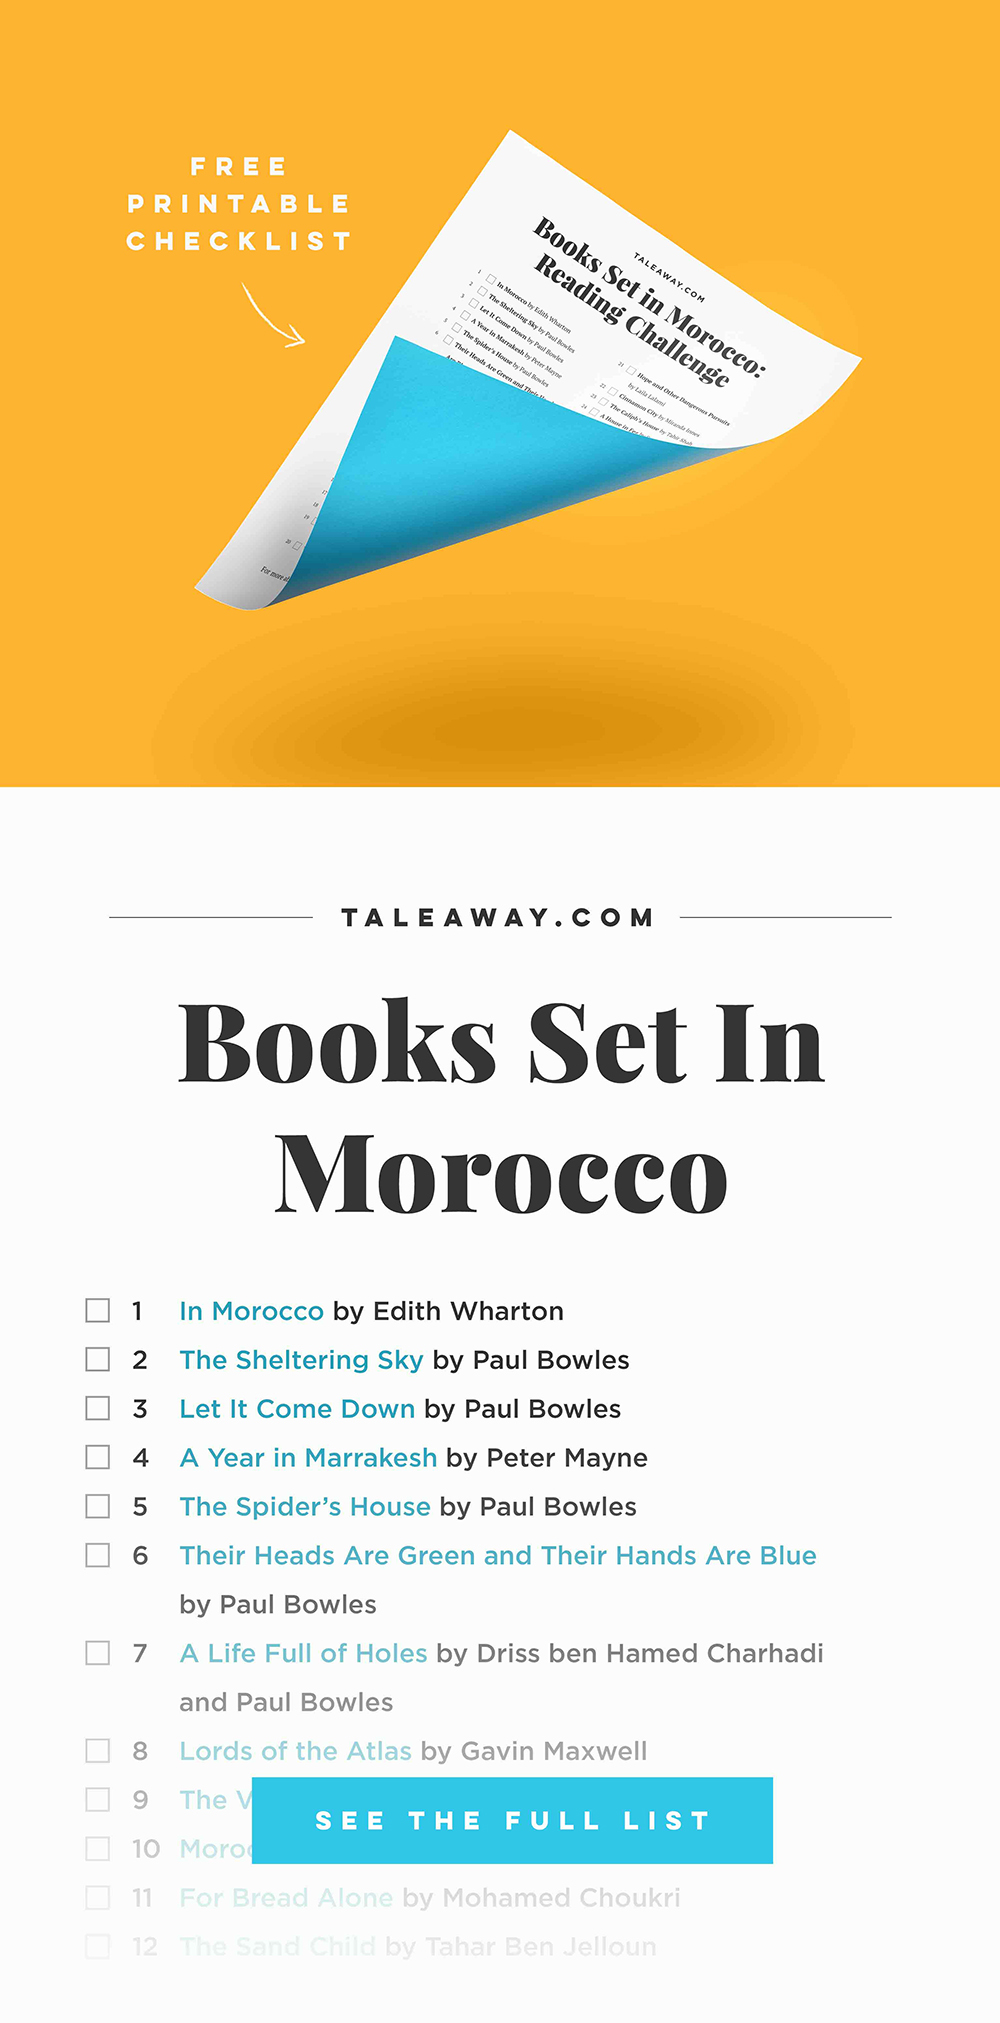 Books Set In Morocco. Visit www.taleway.com for books set around the world. moroccan books, books morocco, morocco book, books about morocco, morocco inspiration, morocco travel, morocco reading, morocco reading challenge, morocco packing, marrakesh book, marrakesh inspiration, marrakesh travel, travel reading challenge, fes travel, casablanca travel, tangier travel, desert travel, books around the world, books to read, books set in different countries, morocco bookshelf, morocco africa, books set in africa, morocco culture, morocco history, morocco author, books and travel, reading list